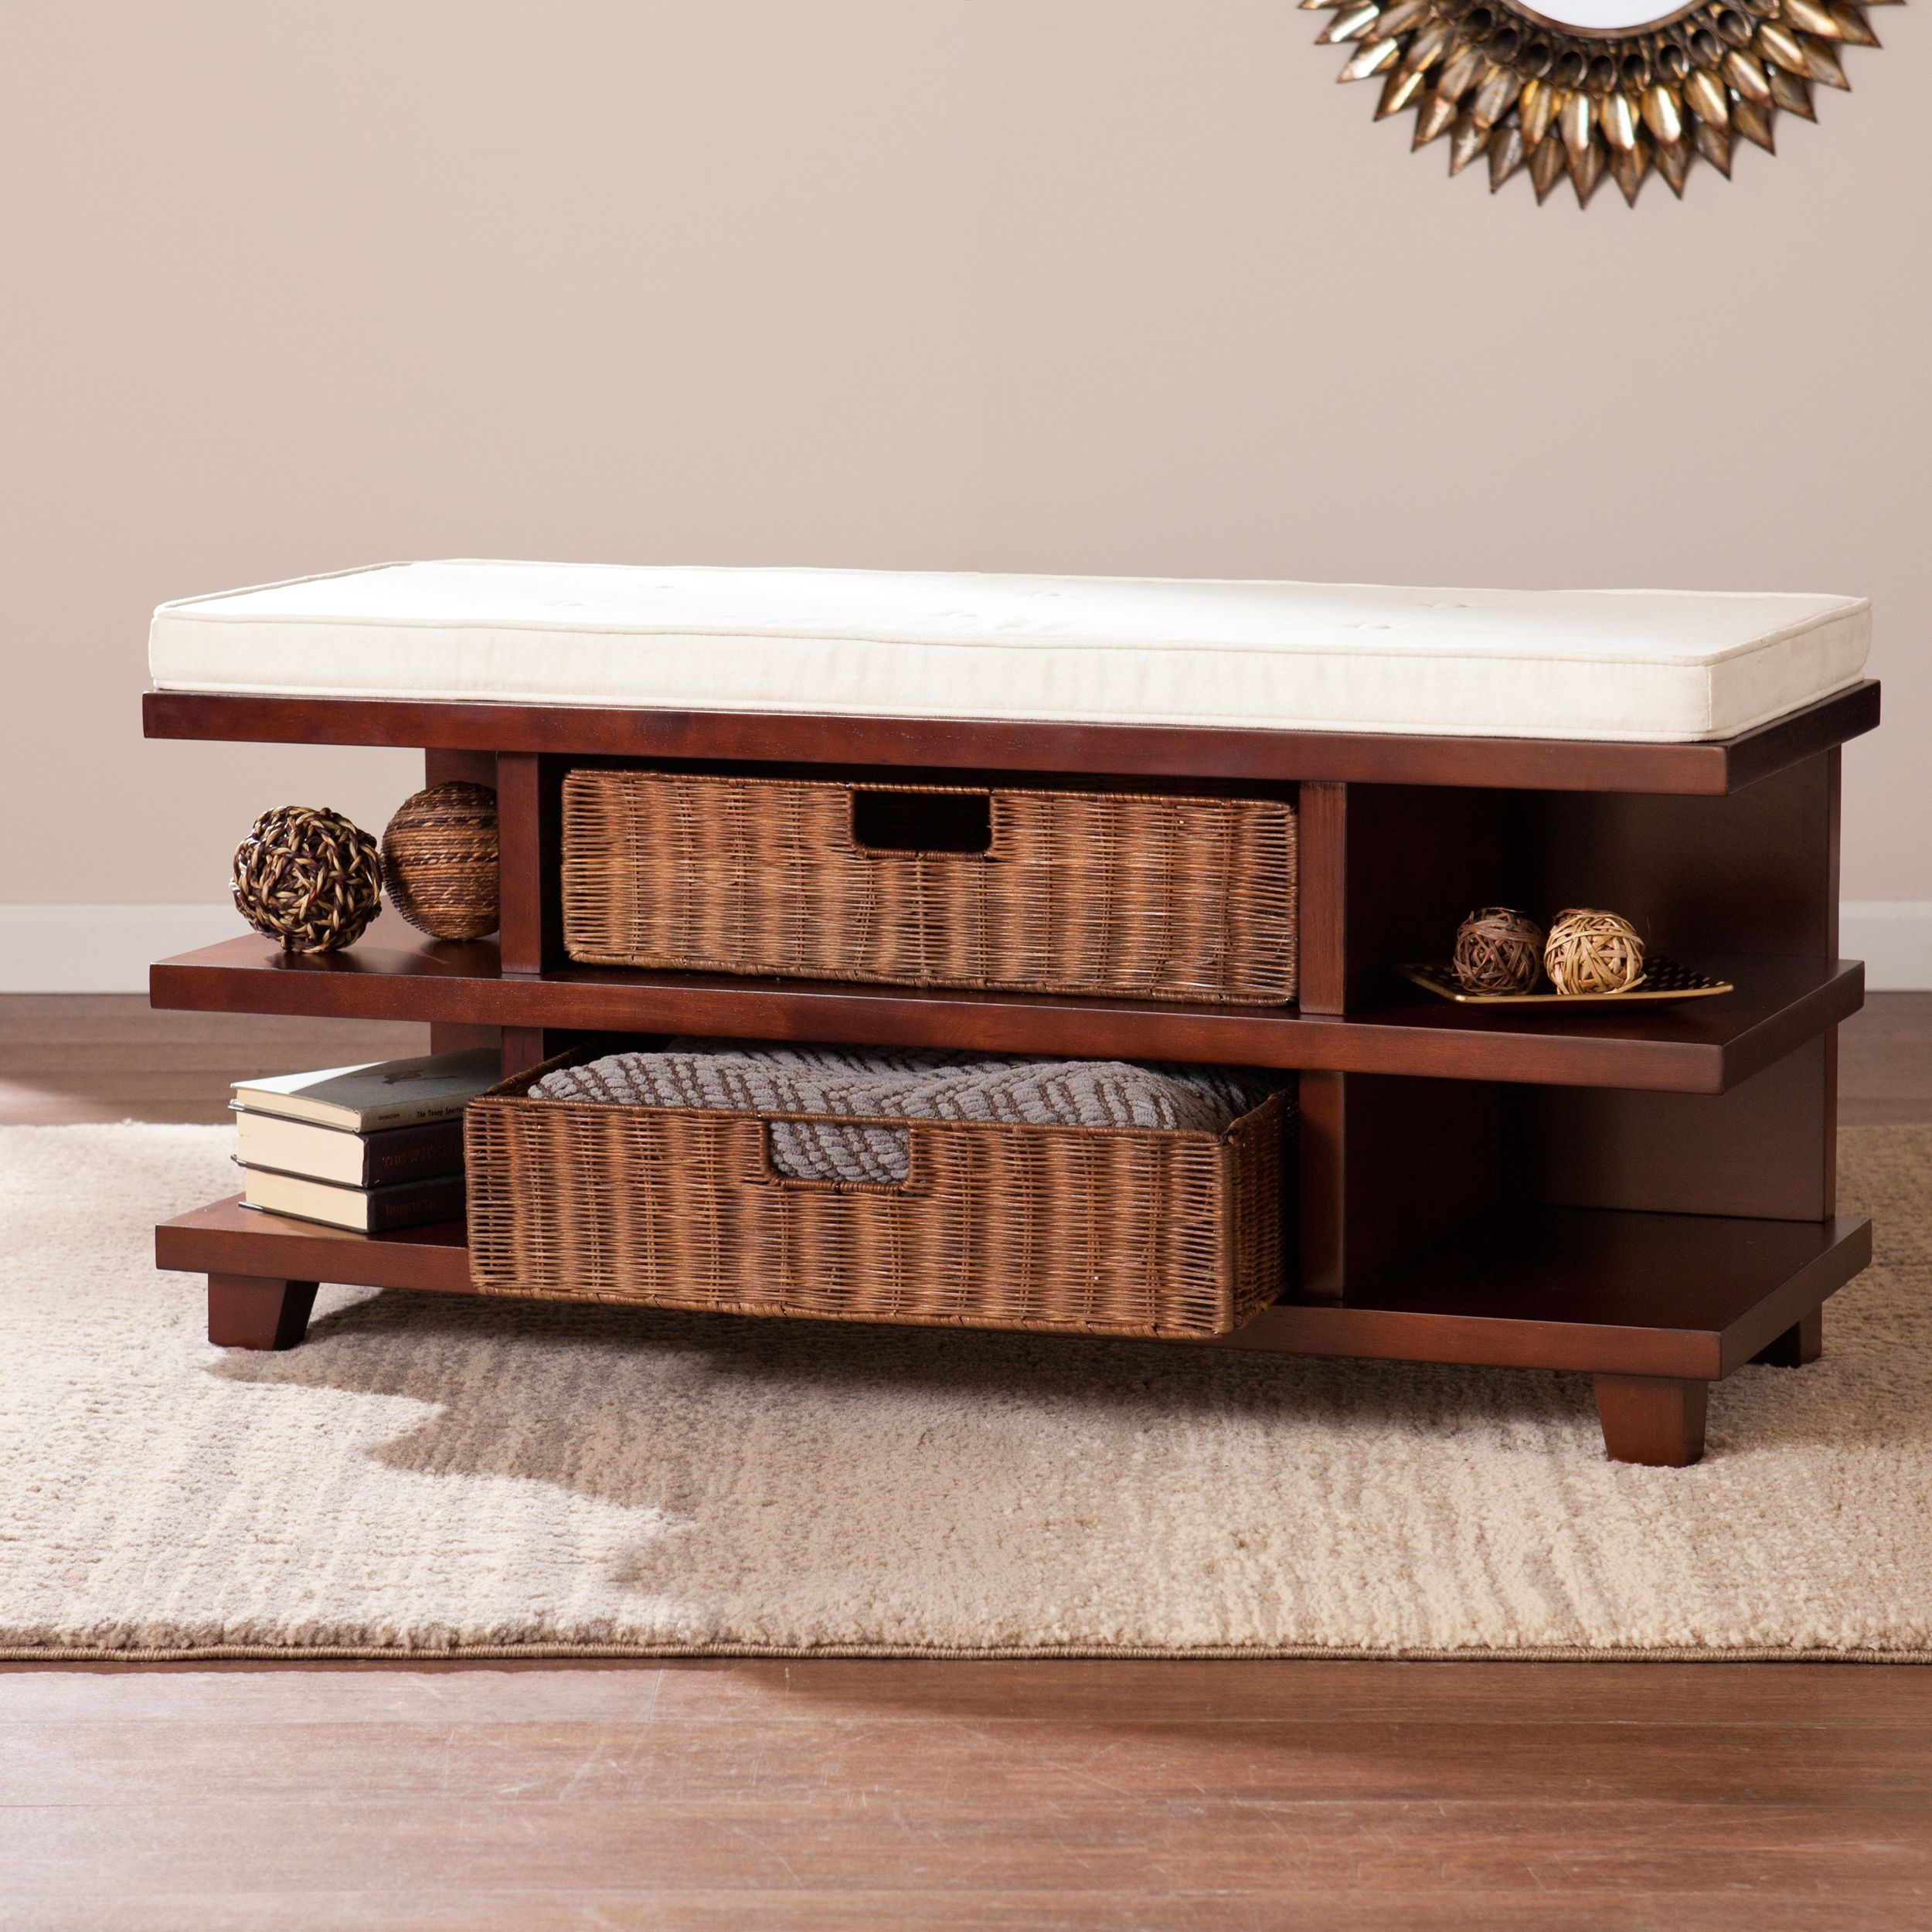 Harper Blvd Alexis Storage Bench | stoly | Pinterest | Muebles ...